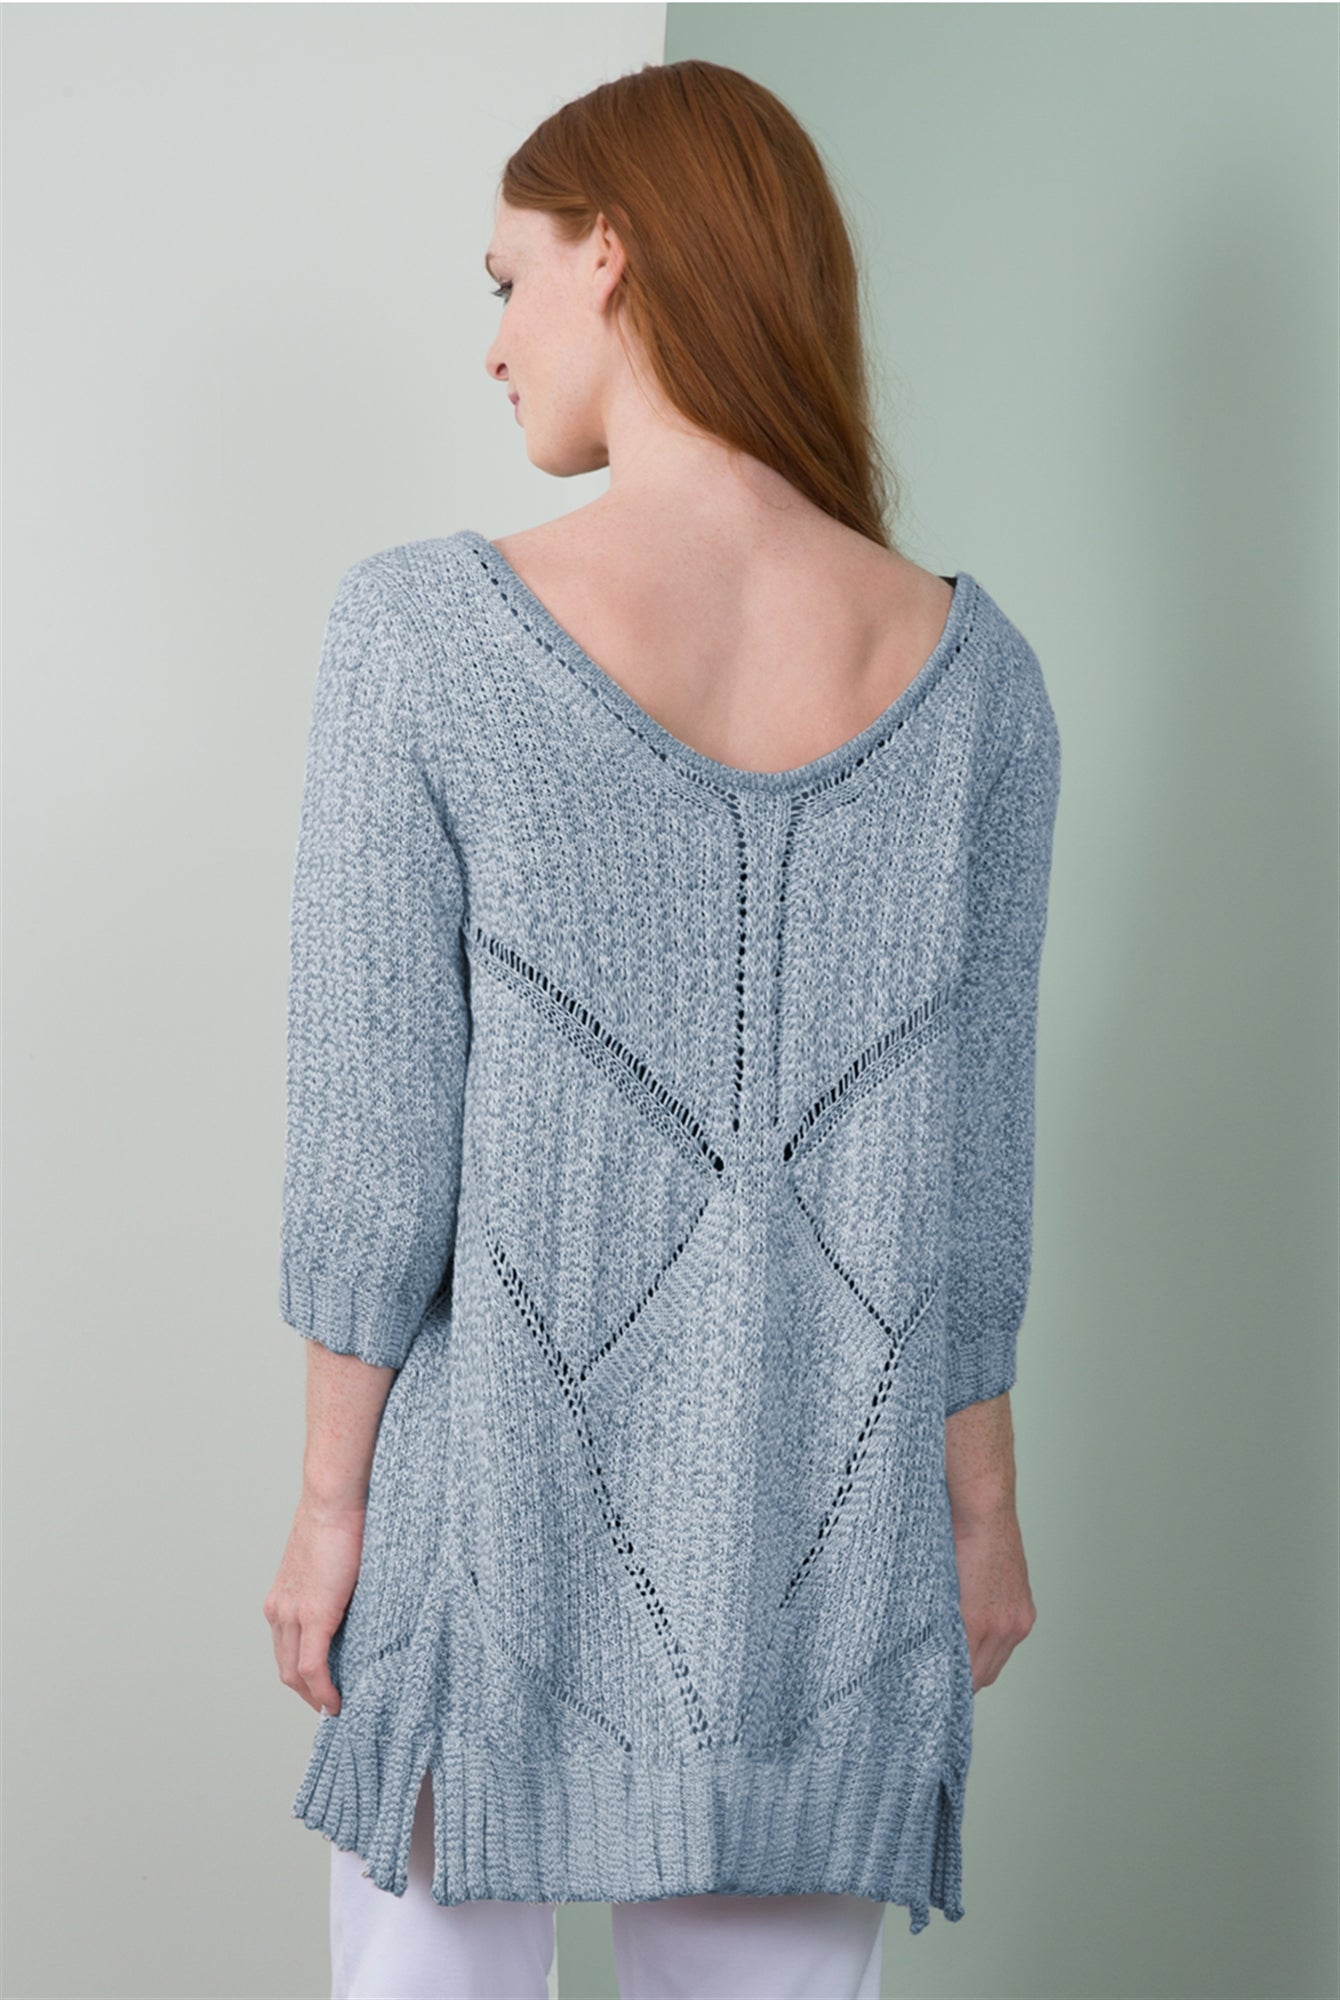 Summer Breeze Cardigan in Light Denim, Palm or Pearl